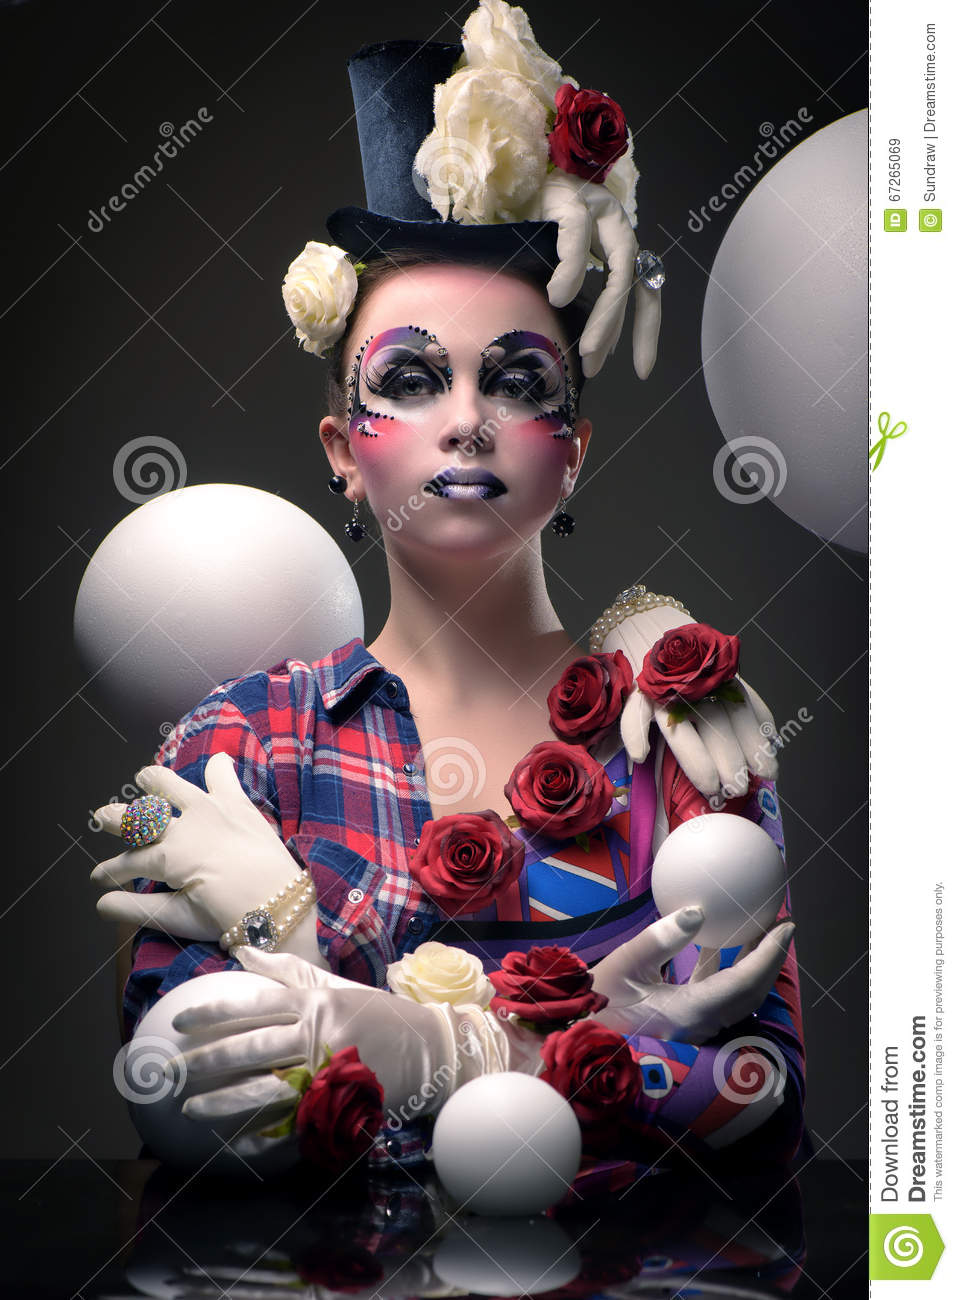 Mysterious Female Jester Masquerade Character Stock Photo Image 67265069